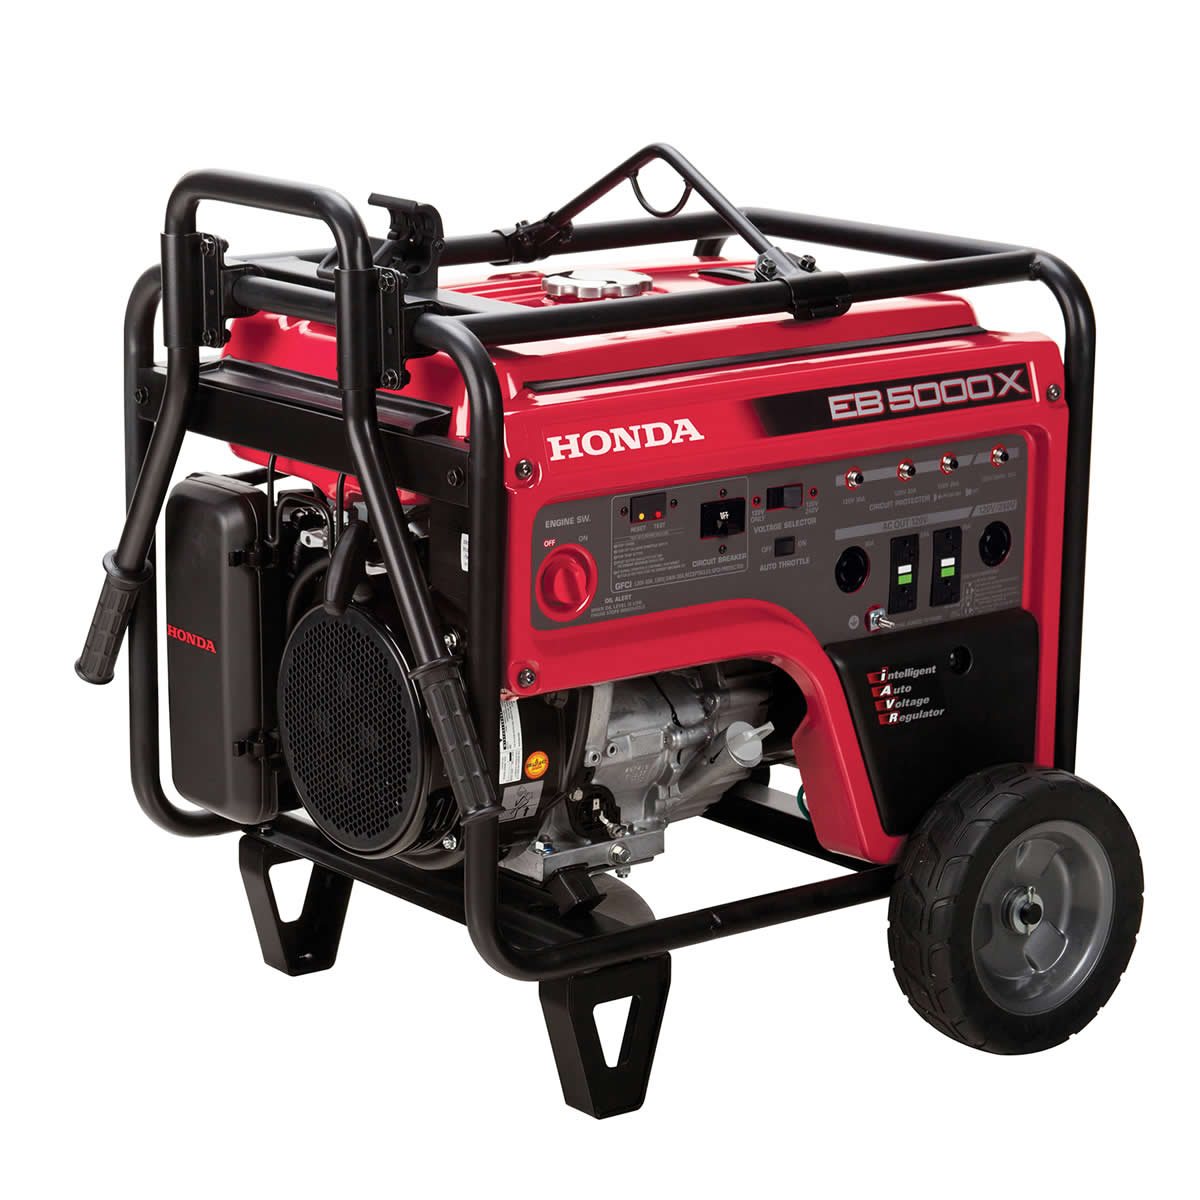 Honda 5000W Industrial/Commercial Generator - 4500W Rated, Recoil Start w/